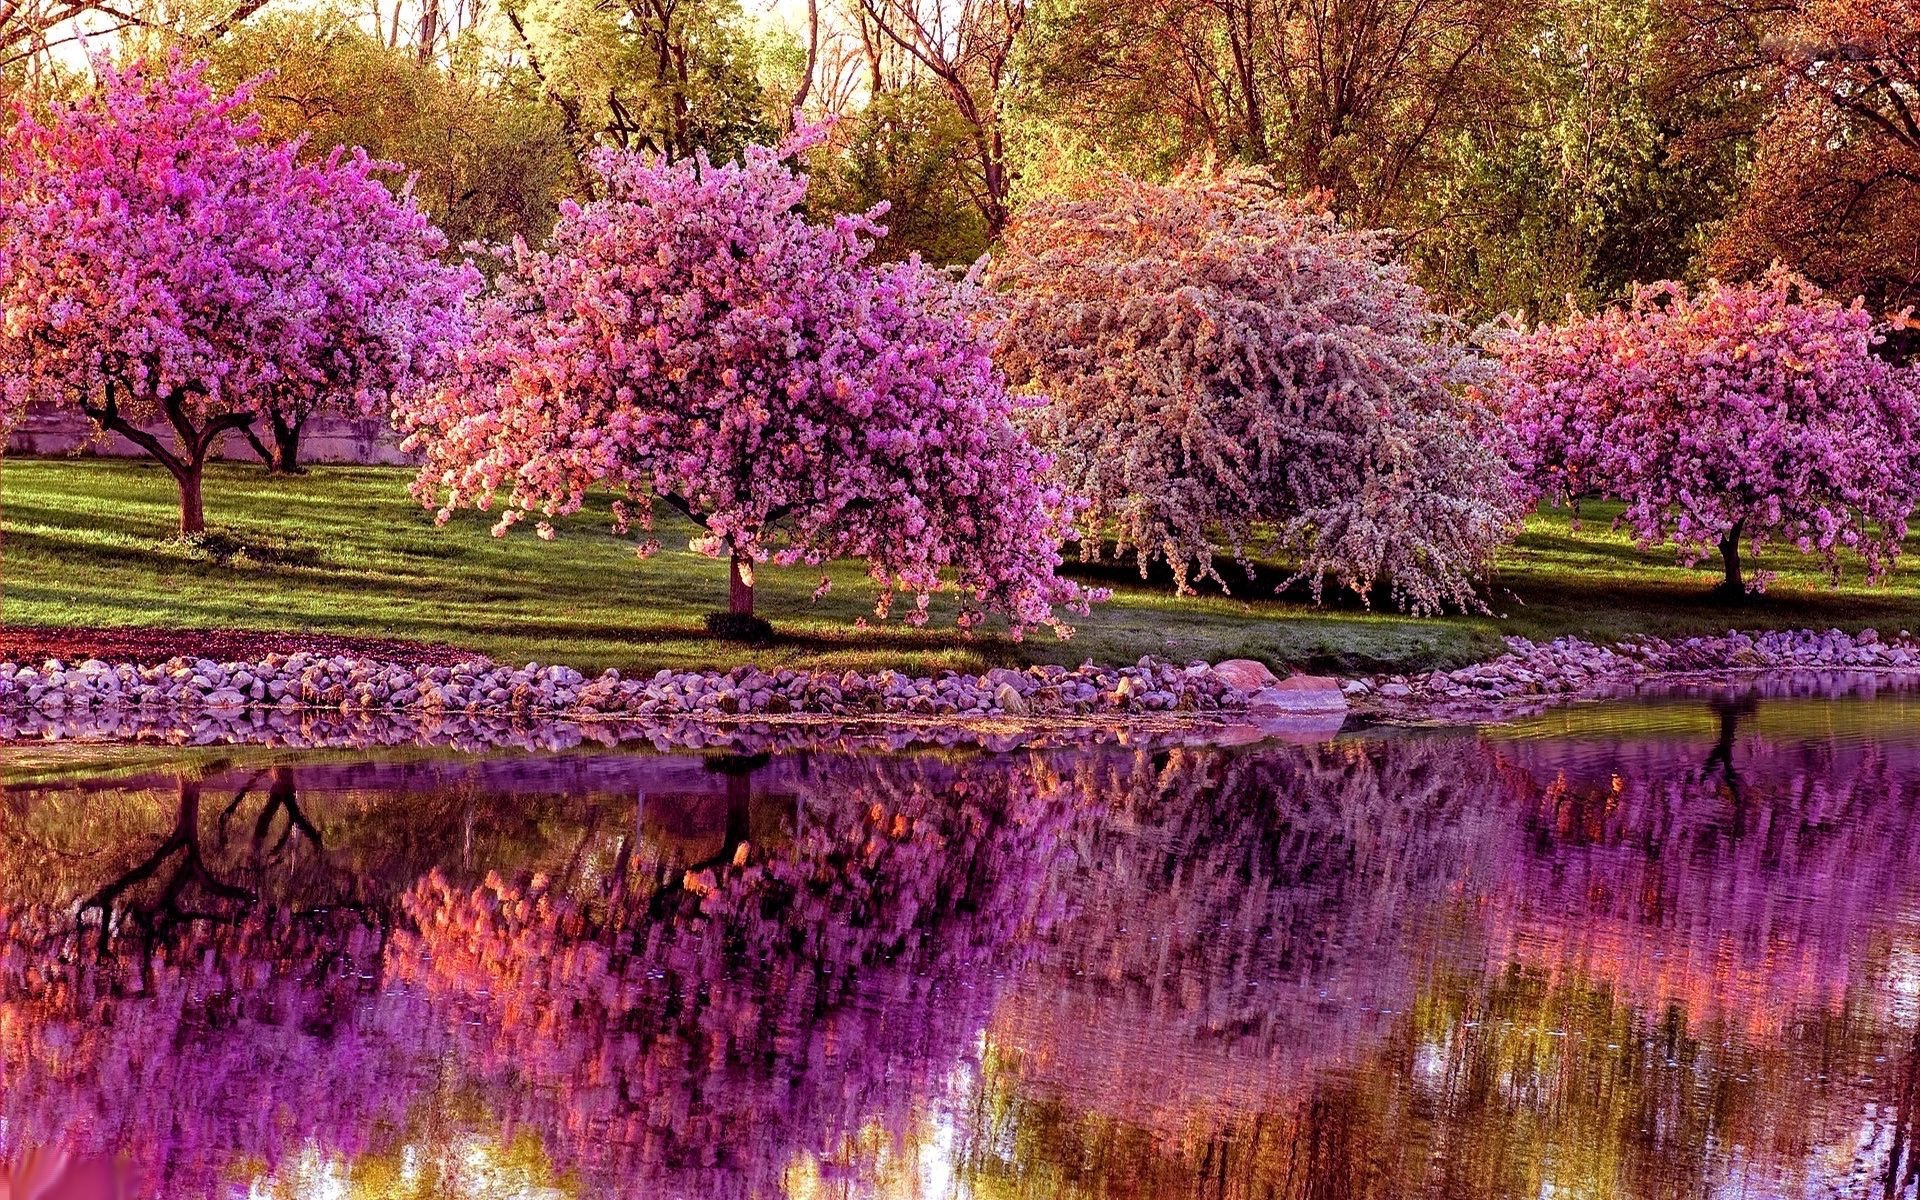 cherry blossoms reflecting on river image